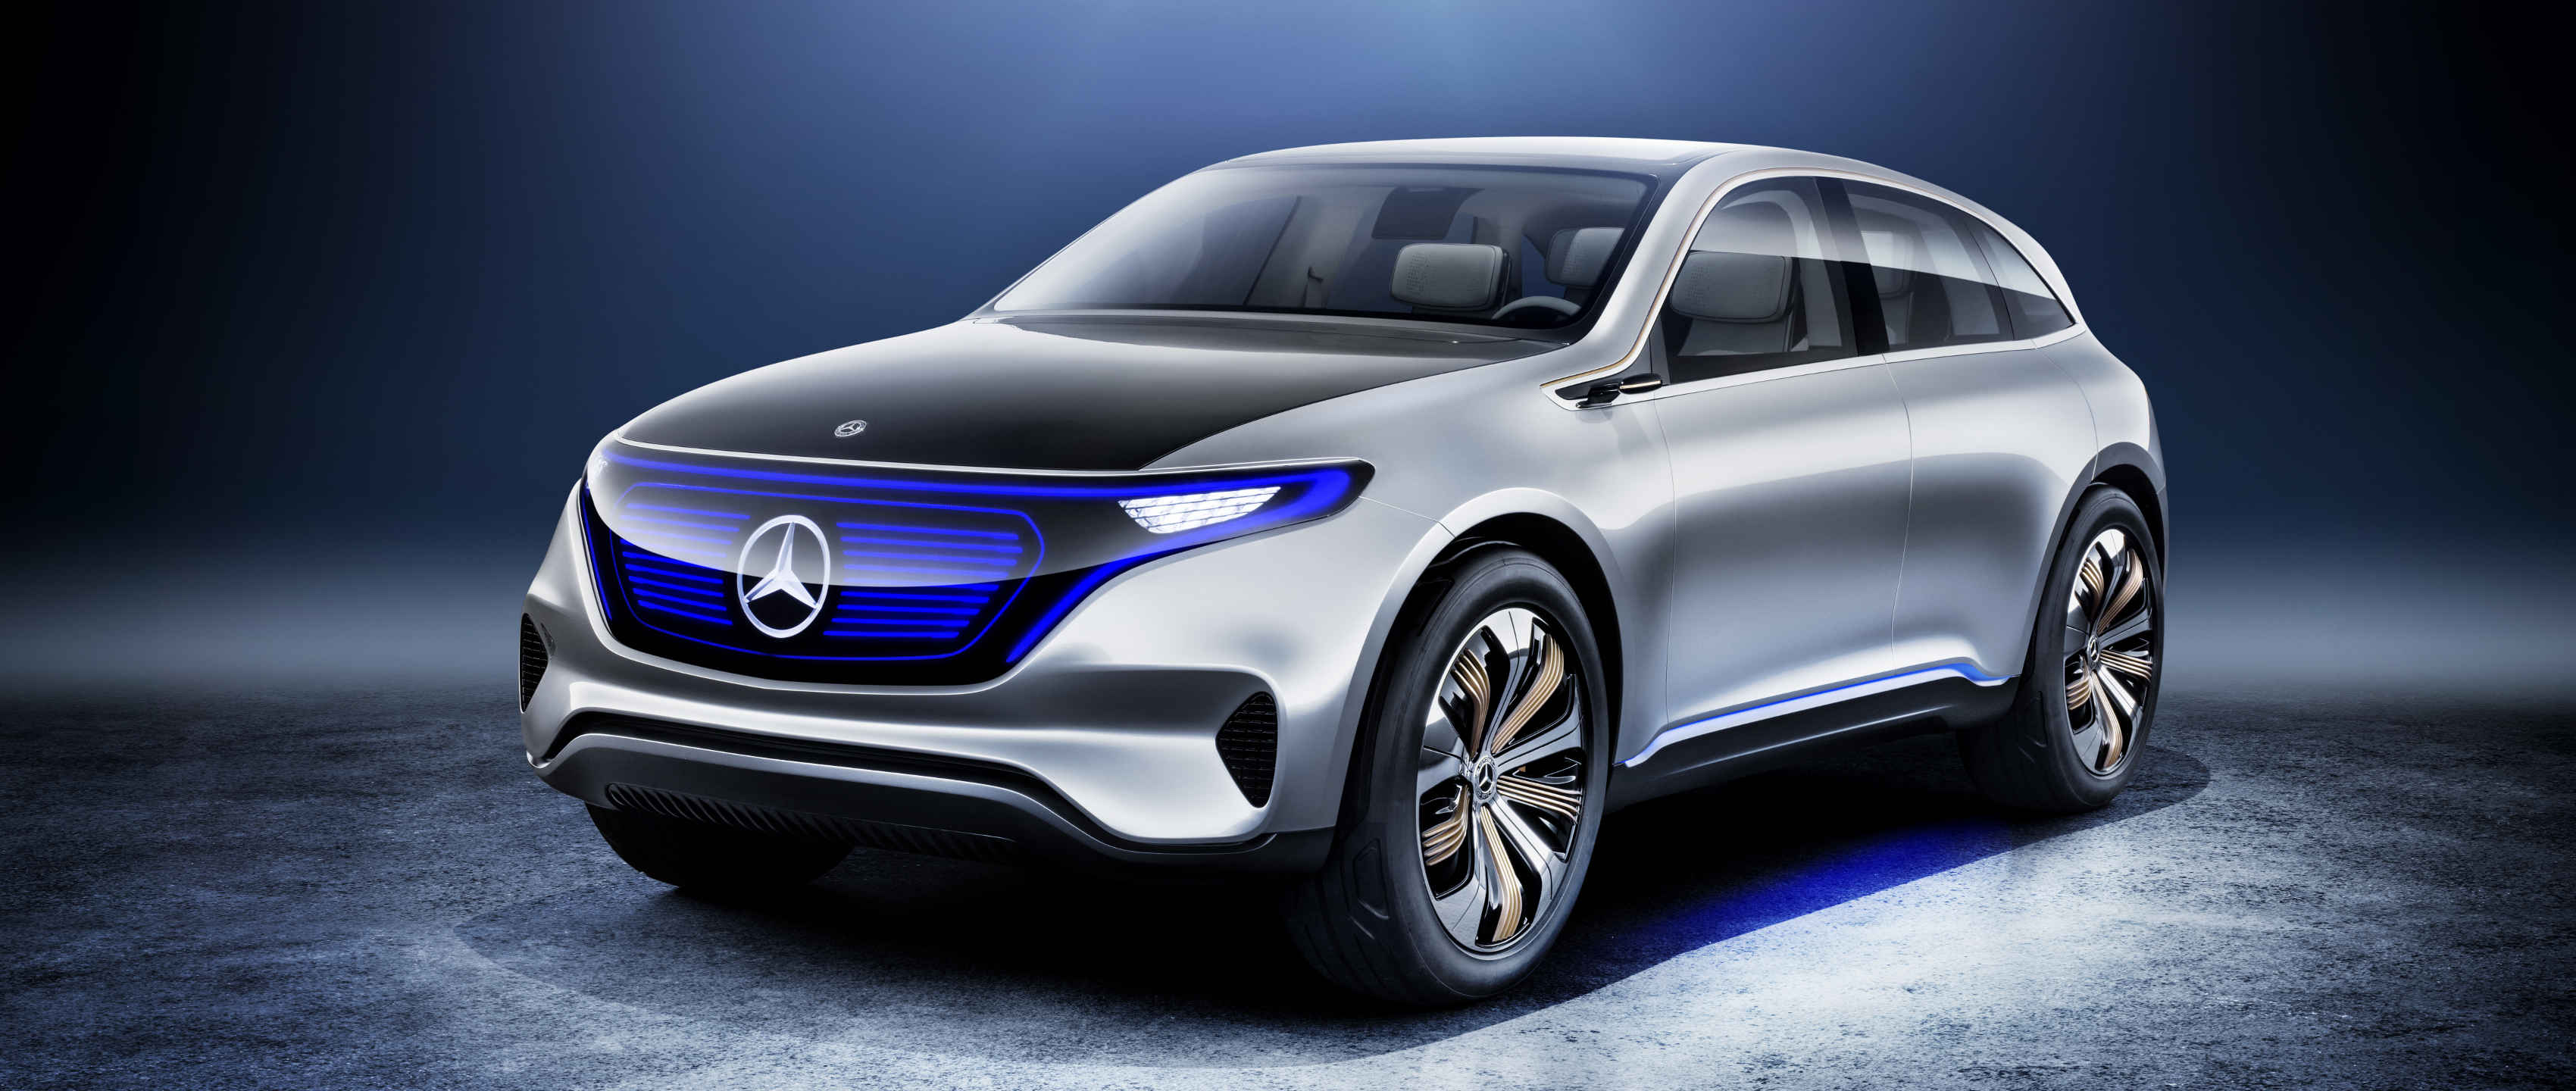 13-mercedes-benz-concept-eq-electric-mobility-3400x1440.jpg